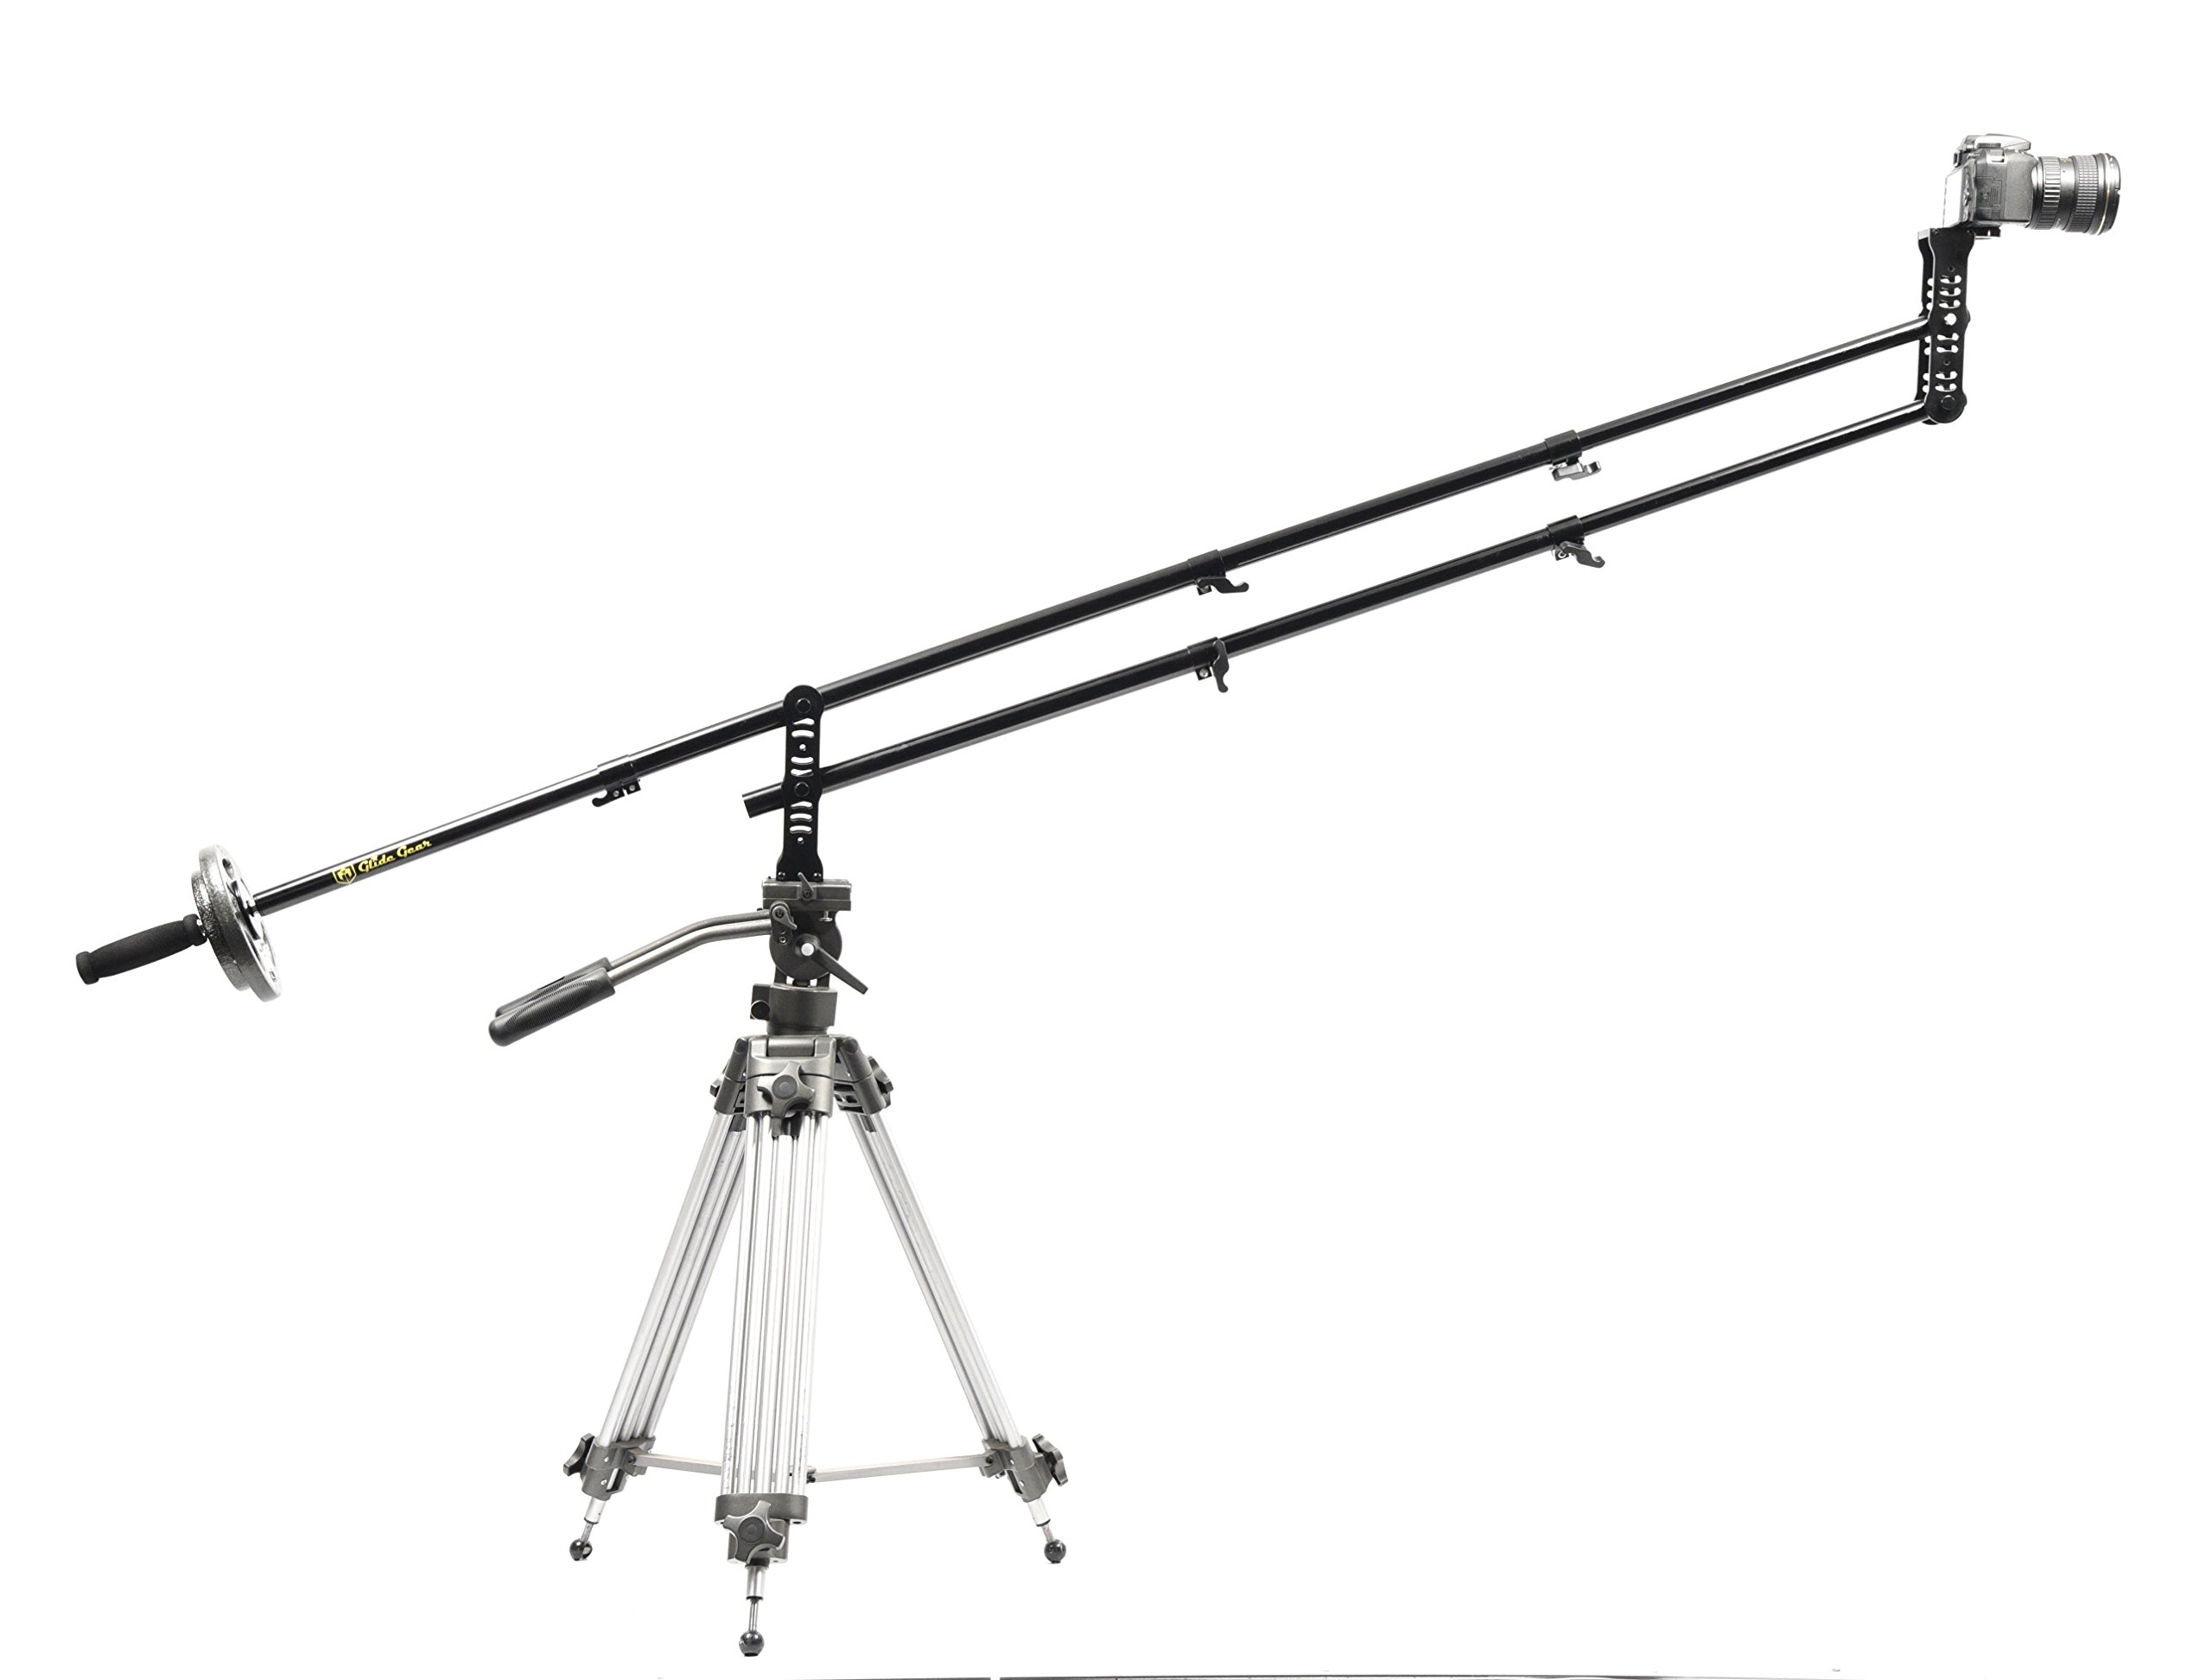 Glide Gear JB4 Portable 4 Ft Jib Crane w/ Carry Case 0-6 lbs Cameras USA COMPANY! by Glide Gear